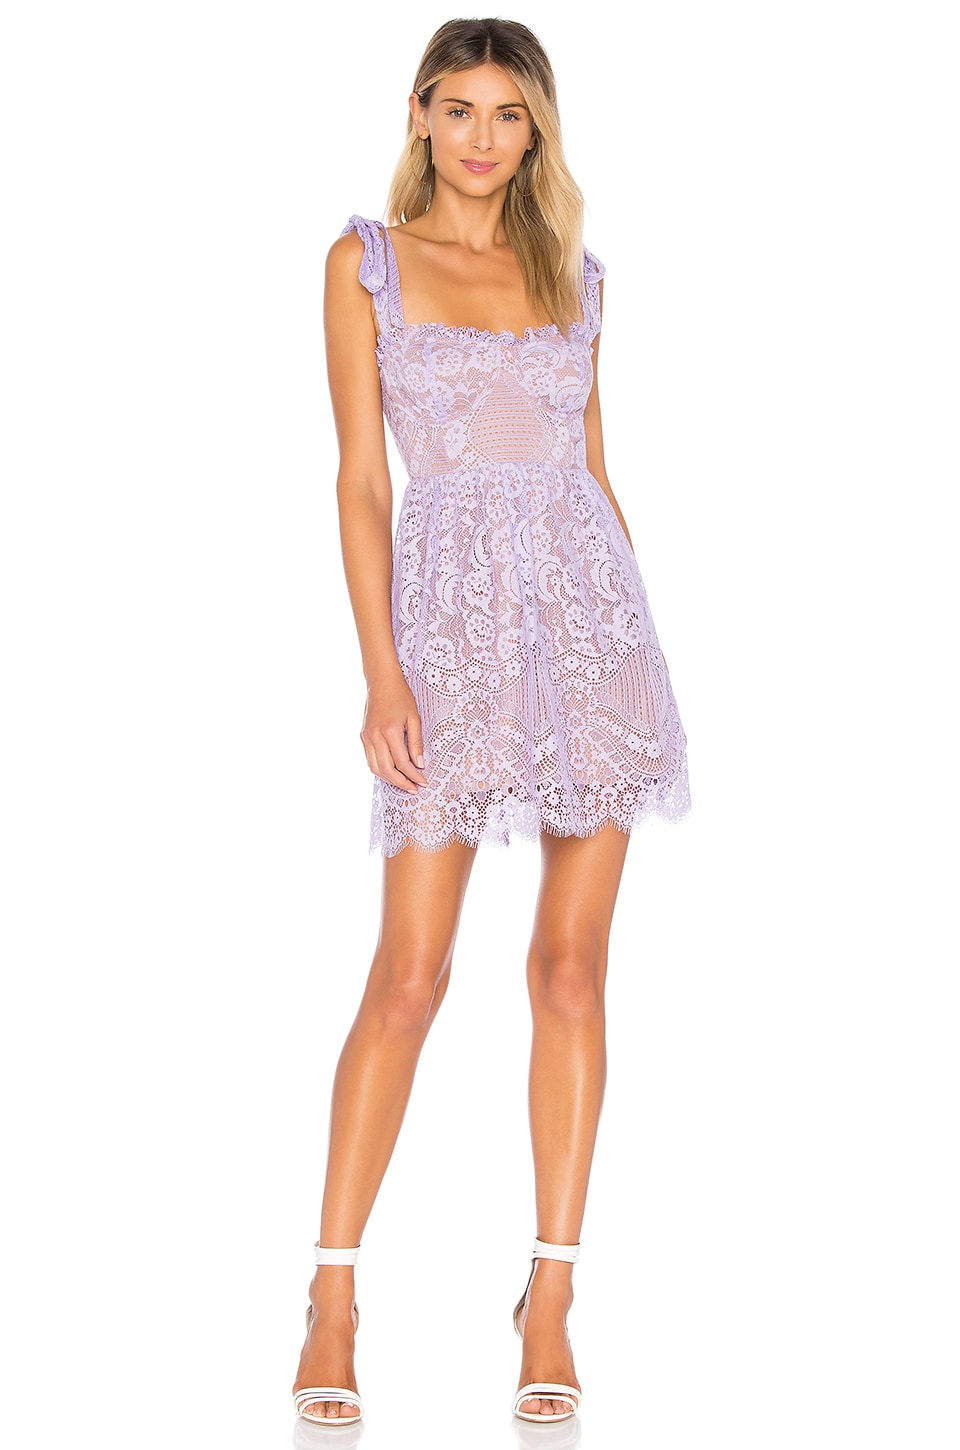 For Love & Lemons Valentina Lace Mini Dress in Lavender